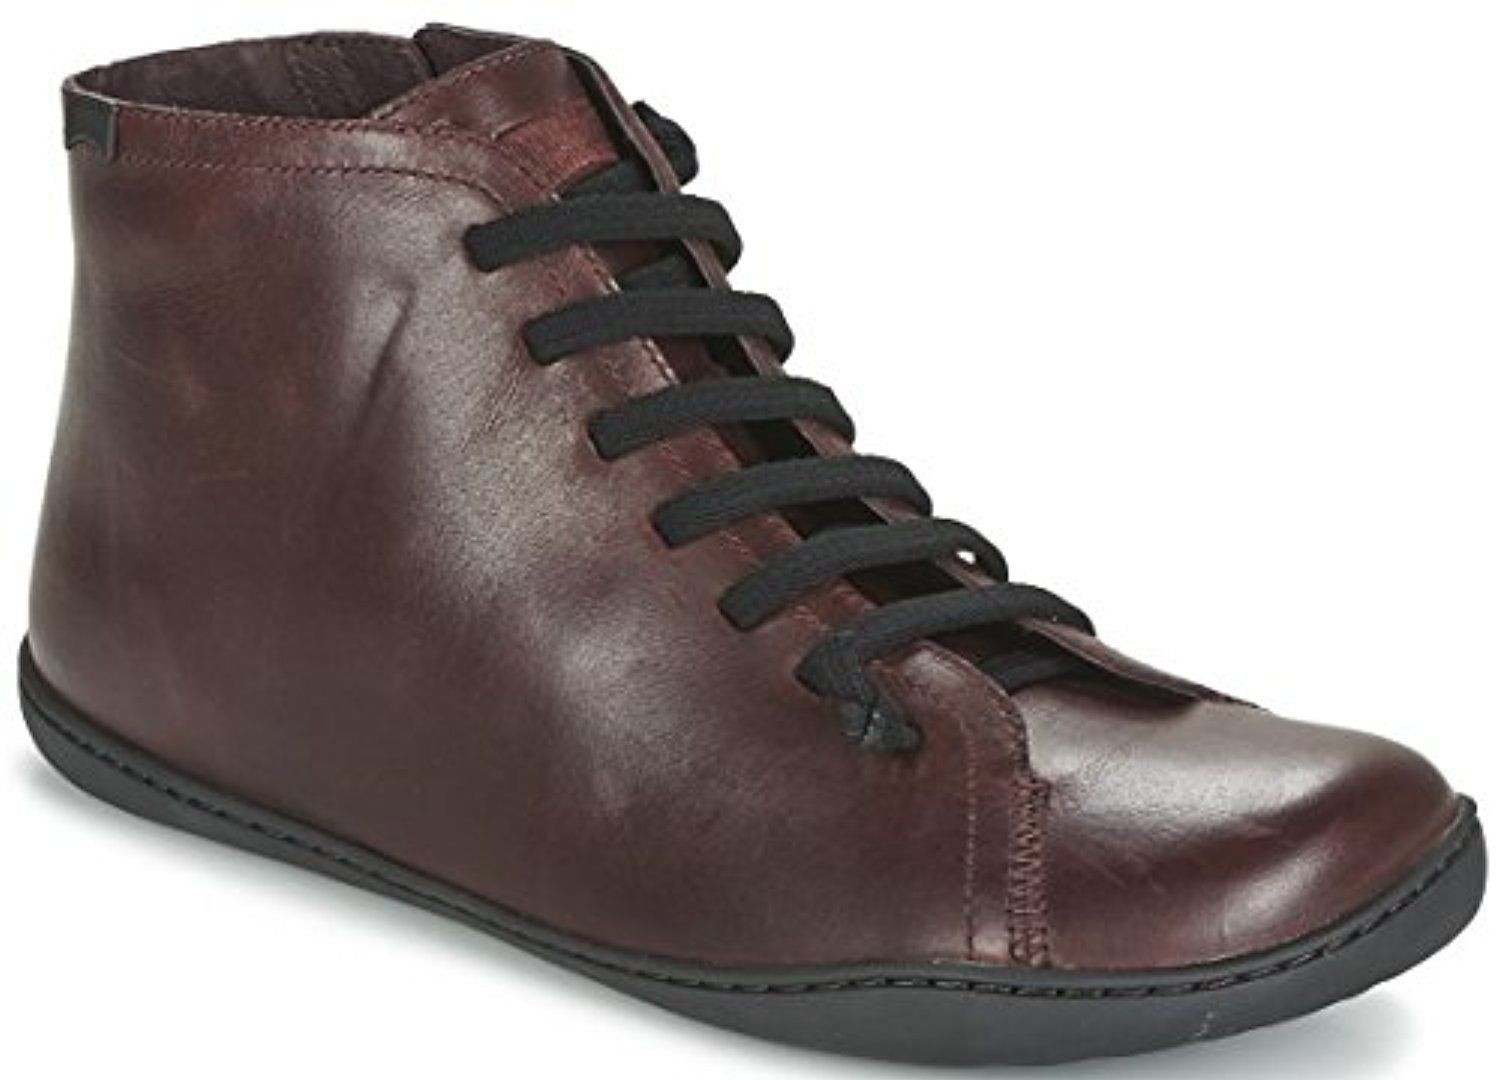 Camper Peu Cami 36411 Brown Black Mens Leather Trainers Shoes Boots 43 Awesome Products Selected By Anna Churchill Boots Mens Leather Trainers Camper Shoes